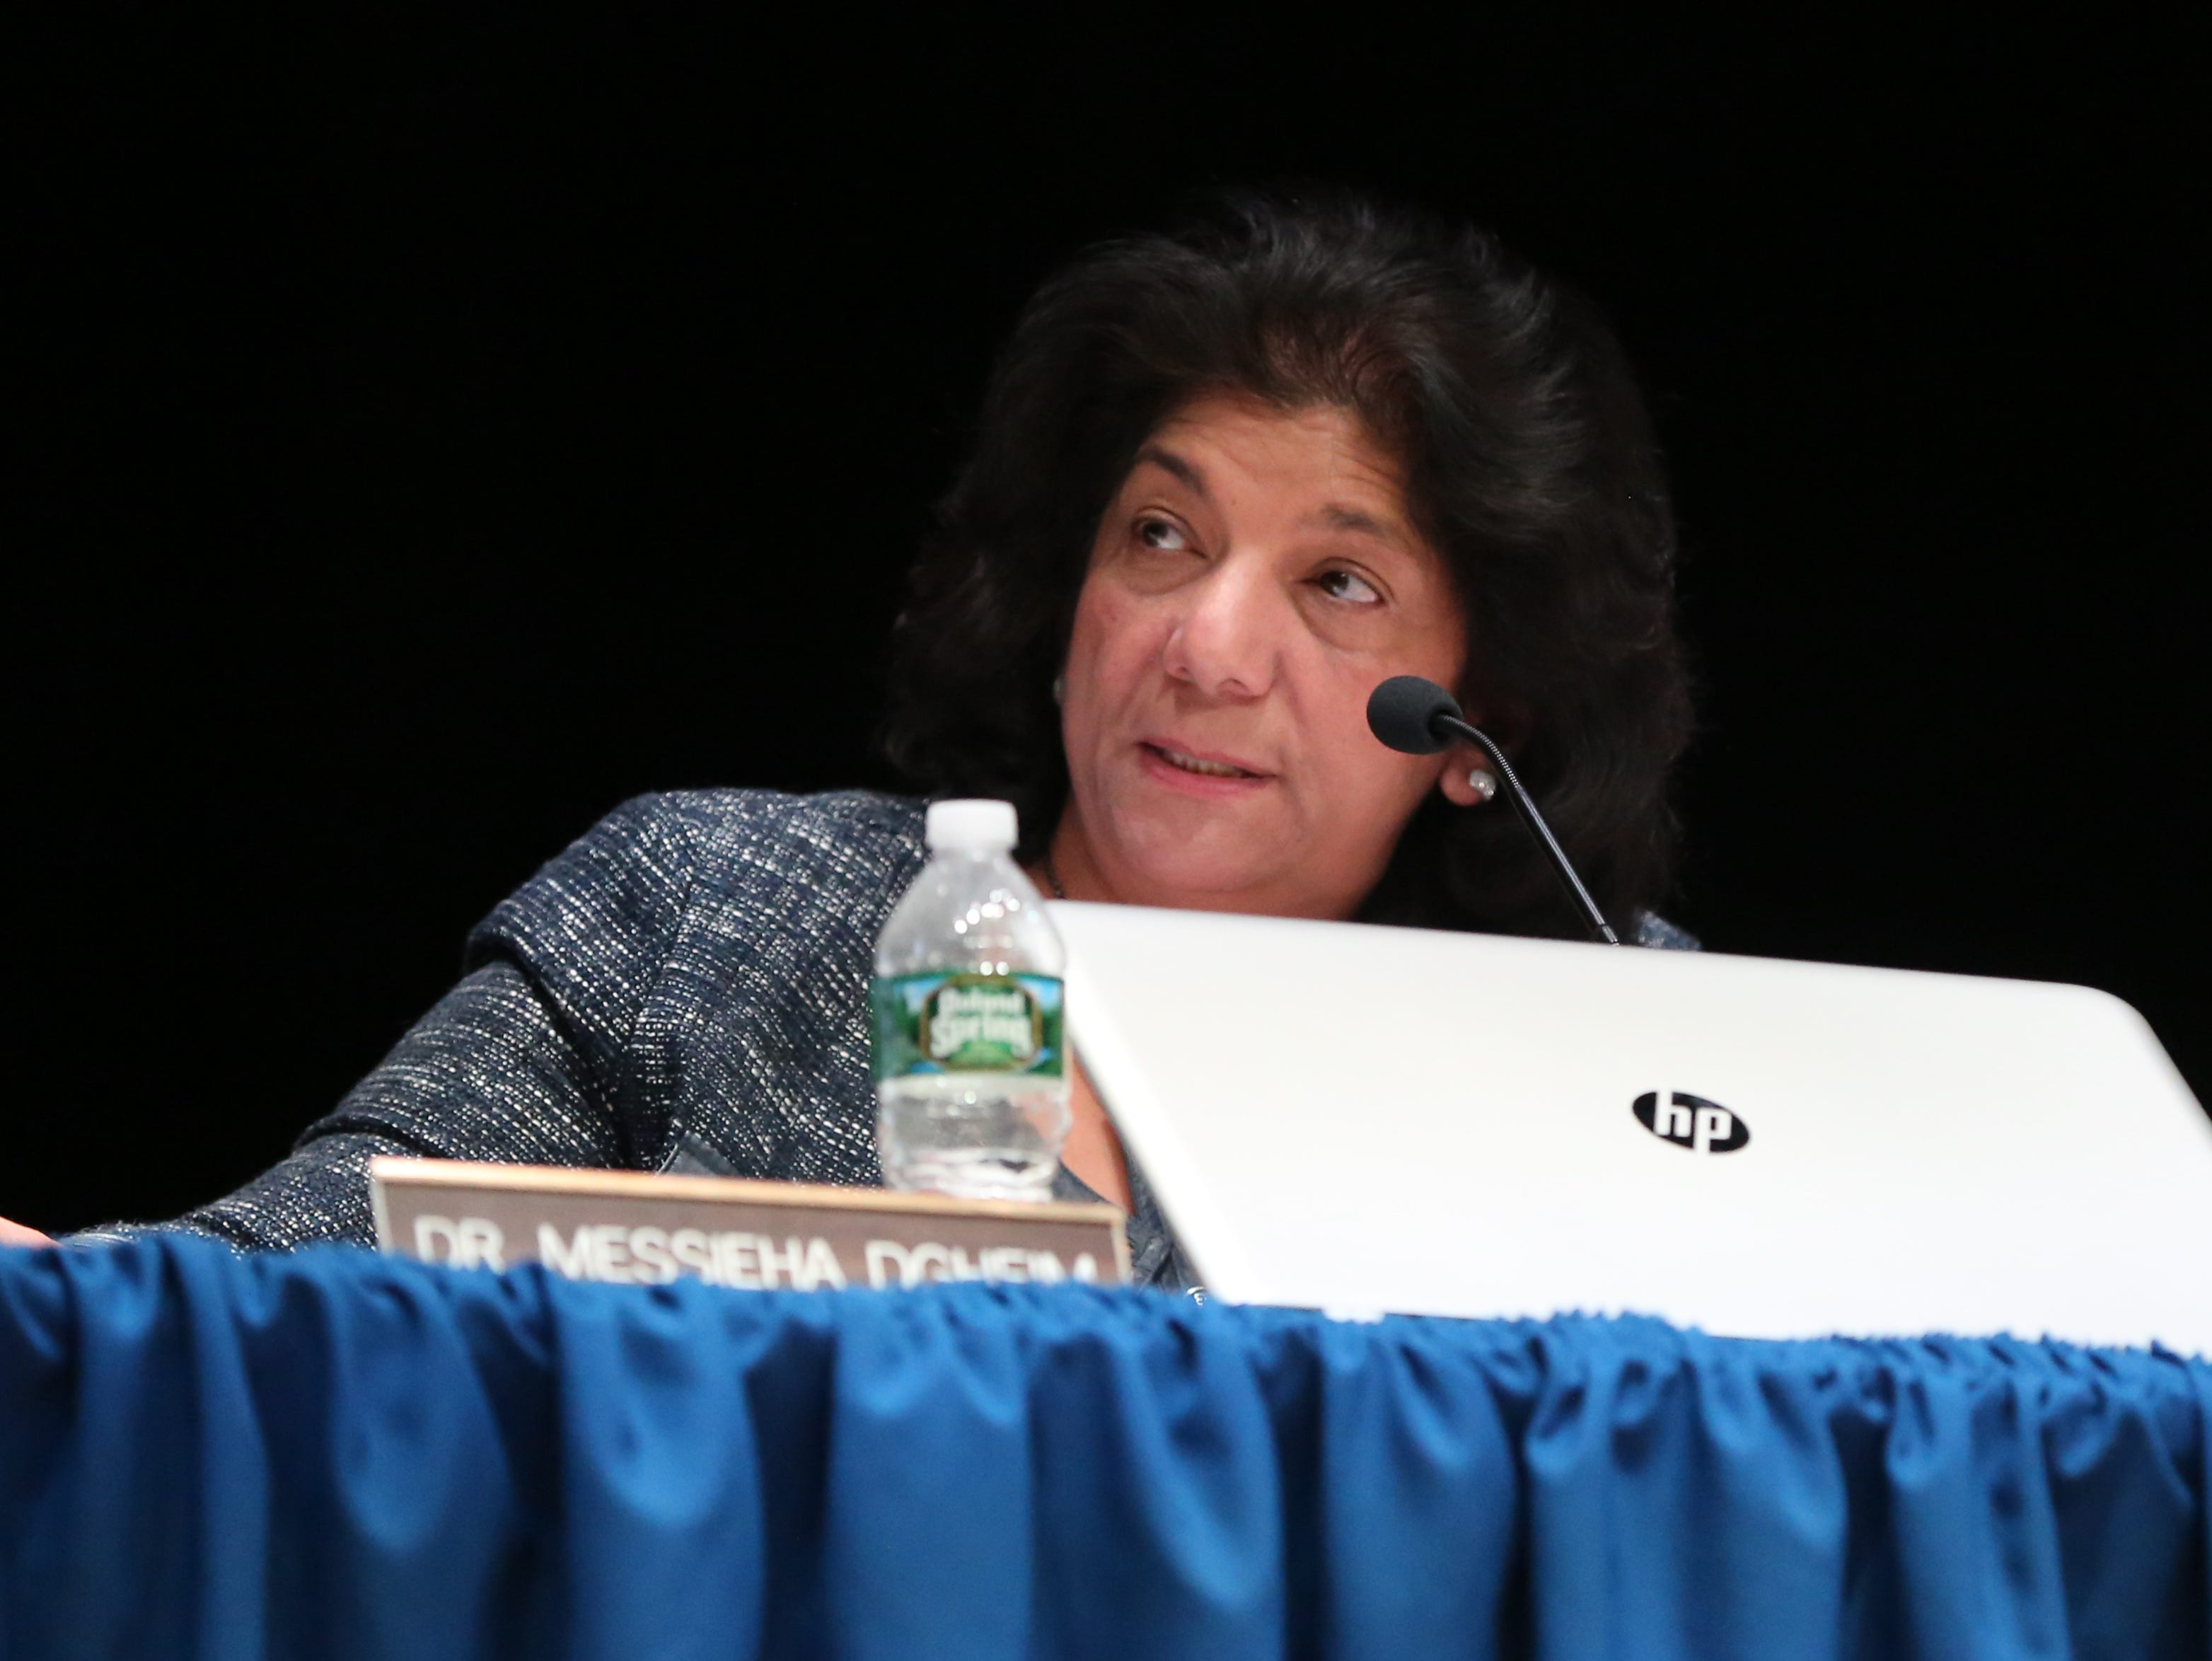 Suffern Central School board president Dr. Messieha Dgheim during a special meeting to deal with backlash from the community over the board suspending veteran Superintendent Douglas Adams on undisclosed disciplinary charges at Suffern Middle School March 11, 2019.